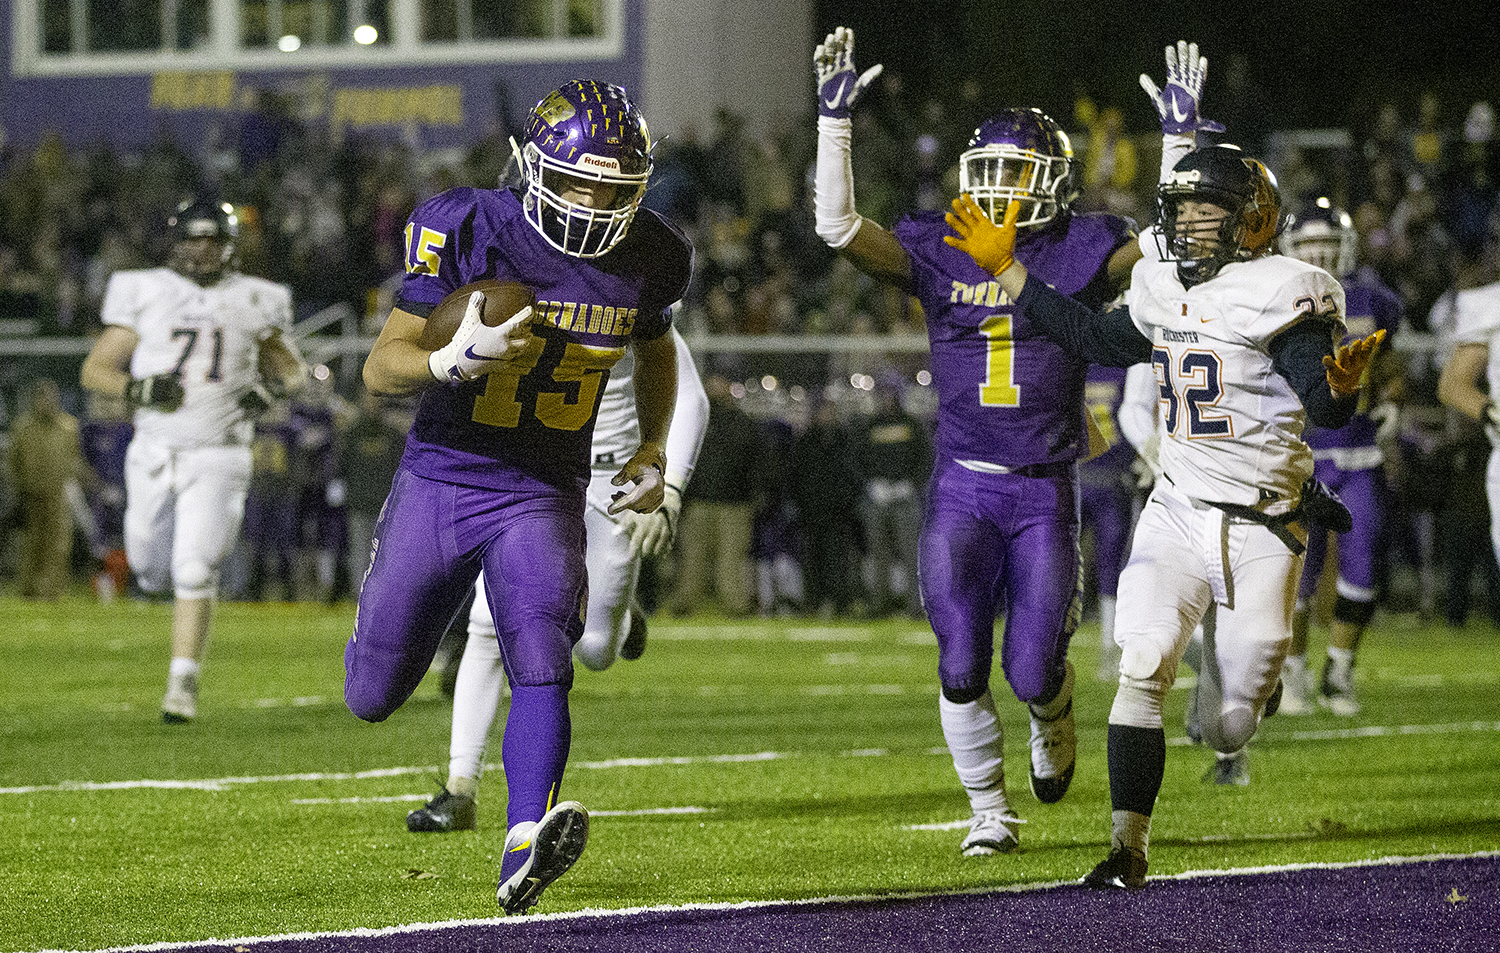 Taylorville's Justin Wright scores against Rochester in the first half during the Class 4A quarterfinals in Taylorville Saturday, Nov. 10, 2018. [Ted Schurter/The State Journal-Register]